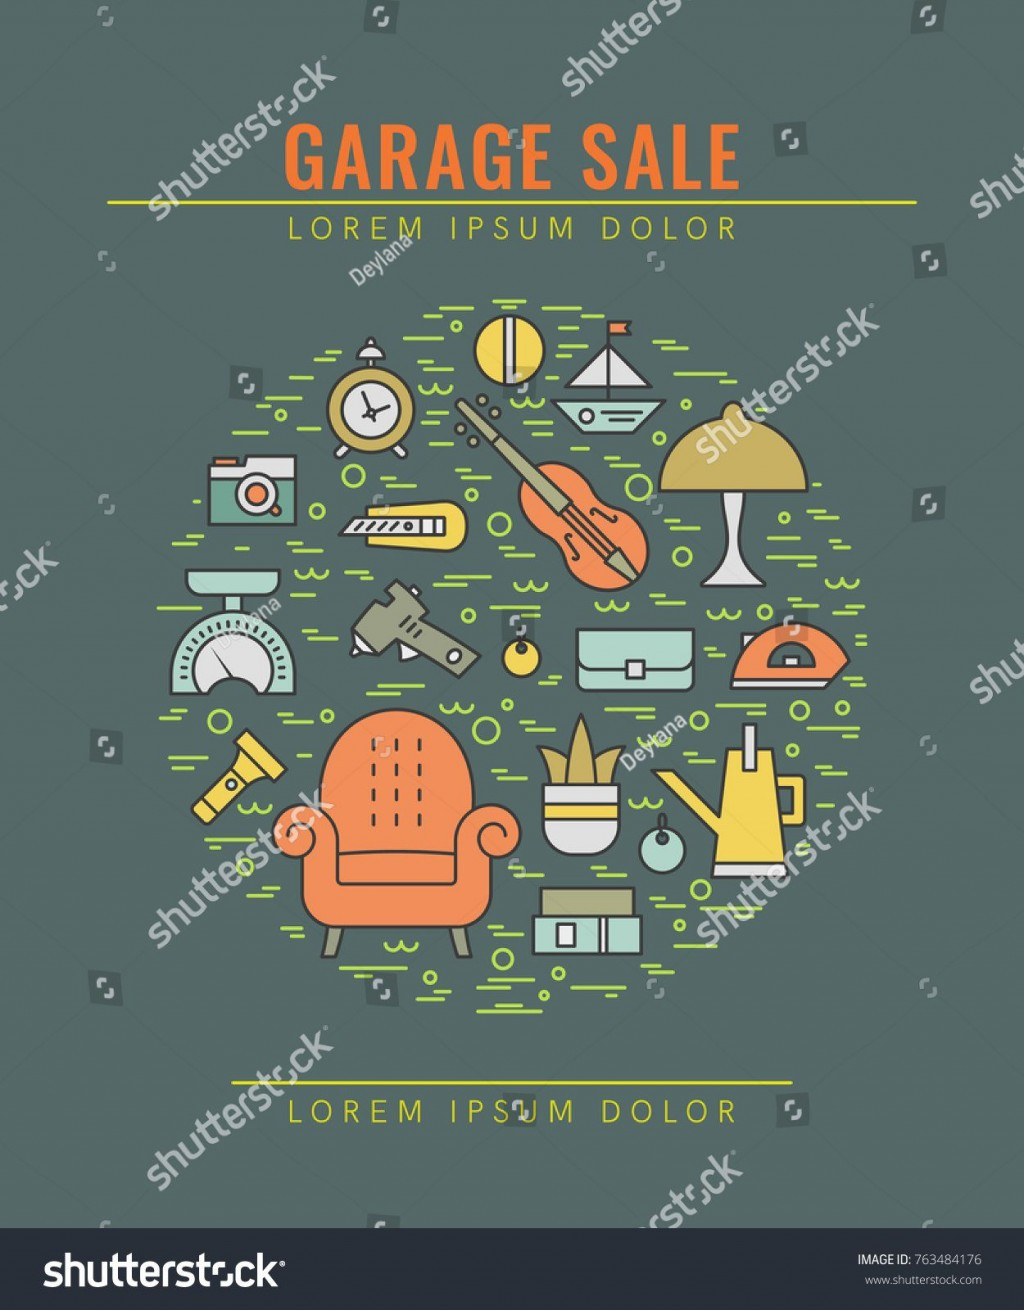 008 Impressive Yard Sale Flyer Template Concept  Ad Sample Microsoft Word Garage FreeLarge